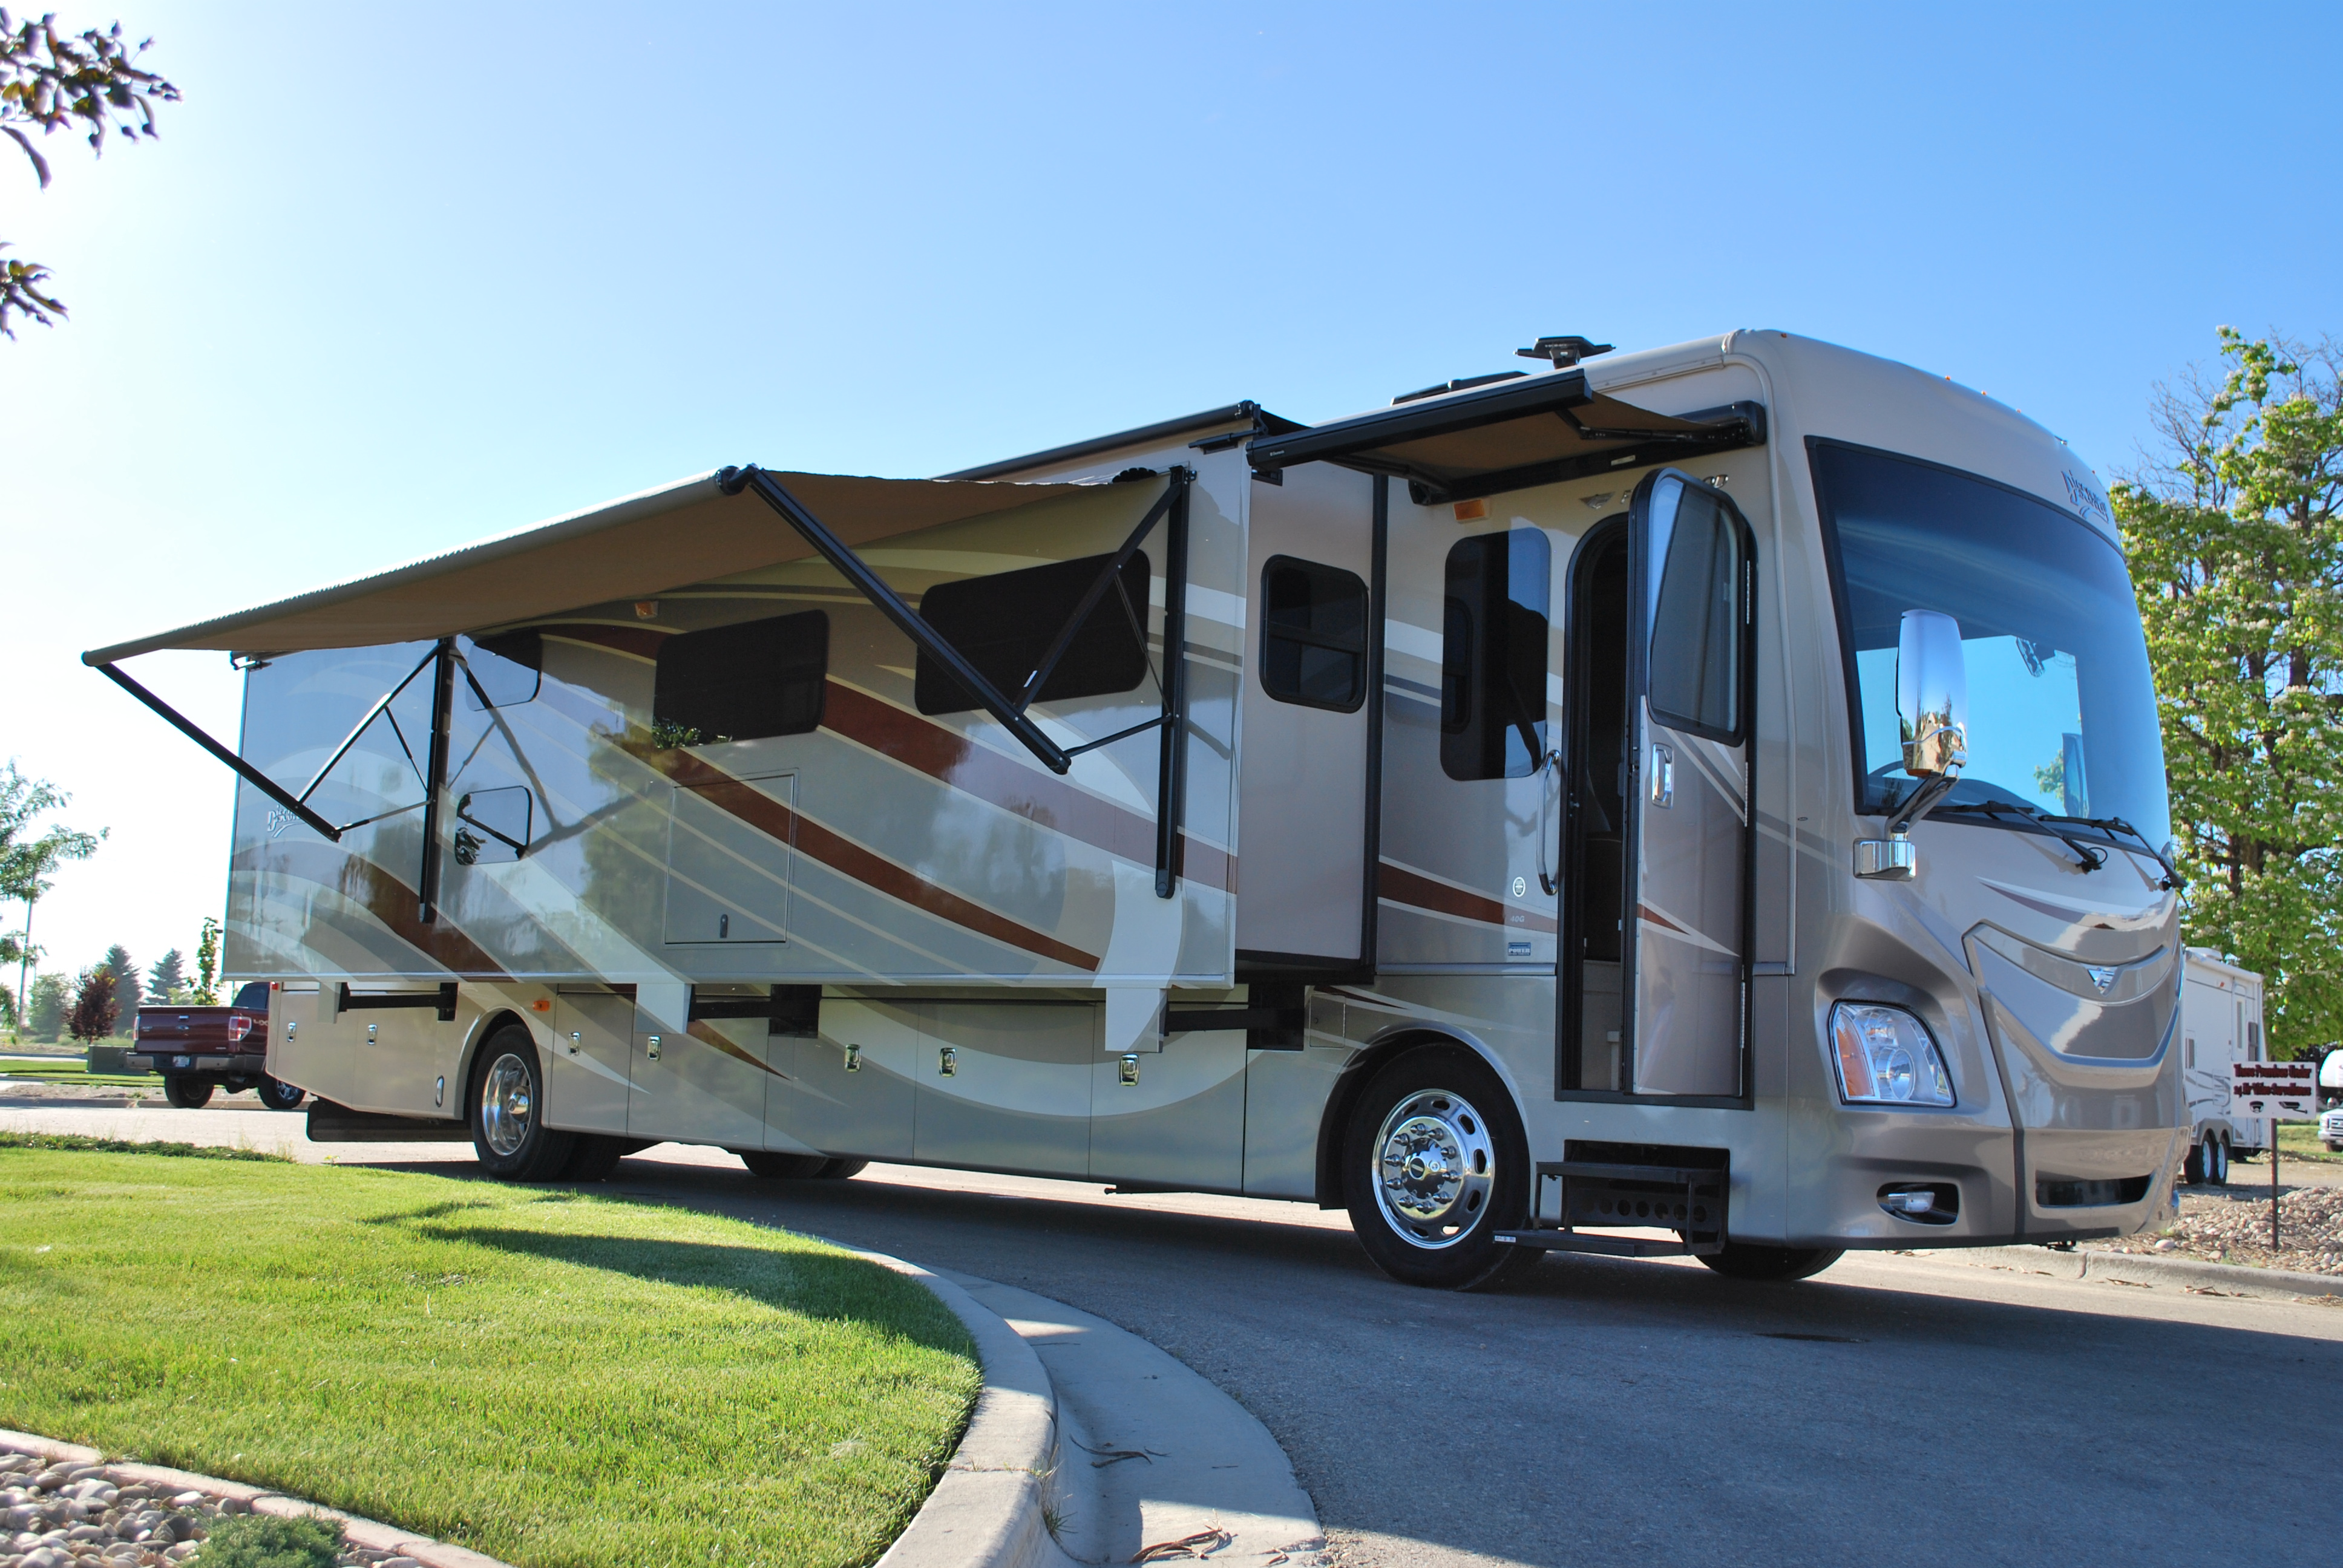 Luxury rv exterior - 40 Fleetwood Discovery Luxury Class A Bunk House Motorhome Rental